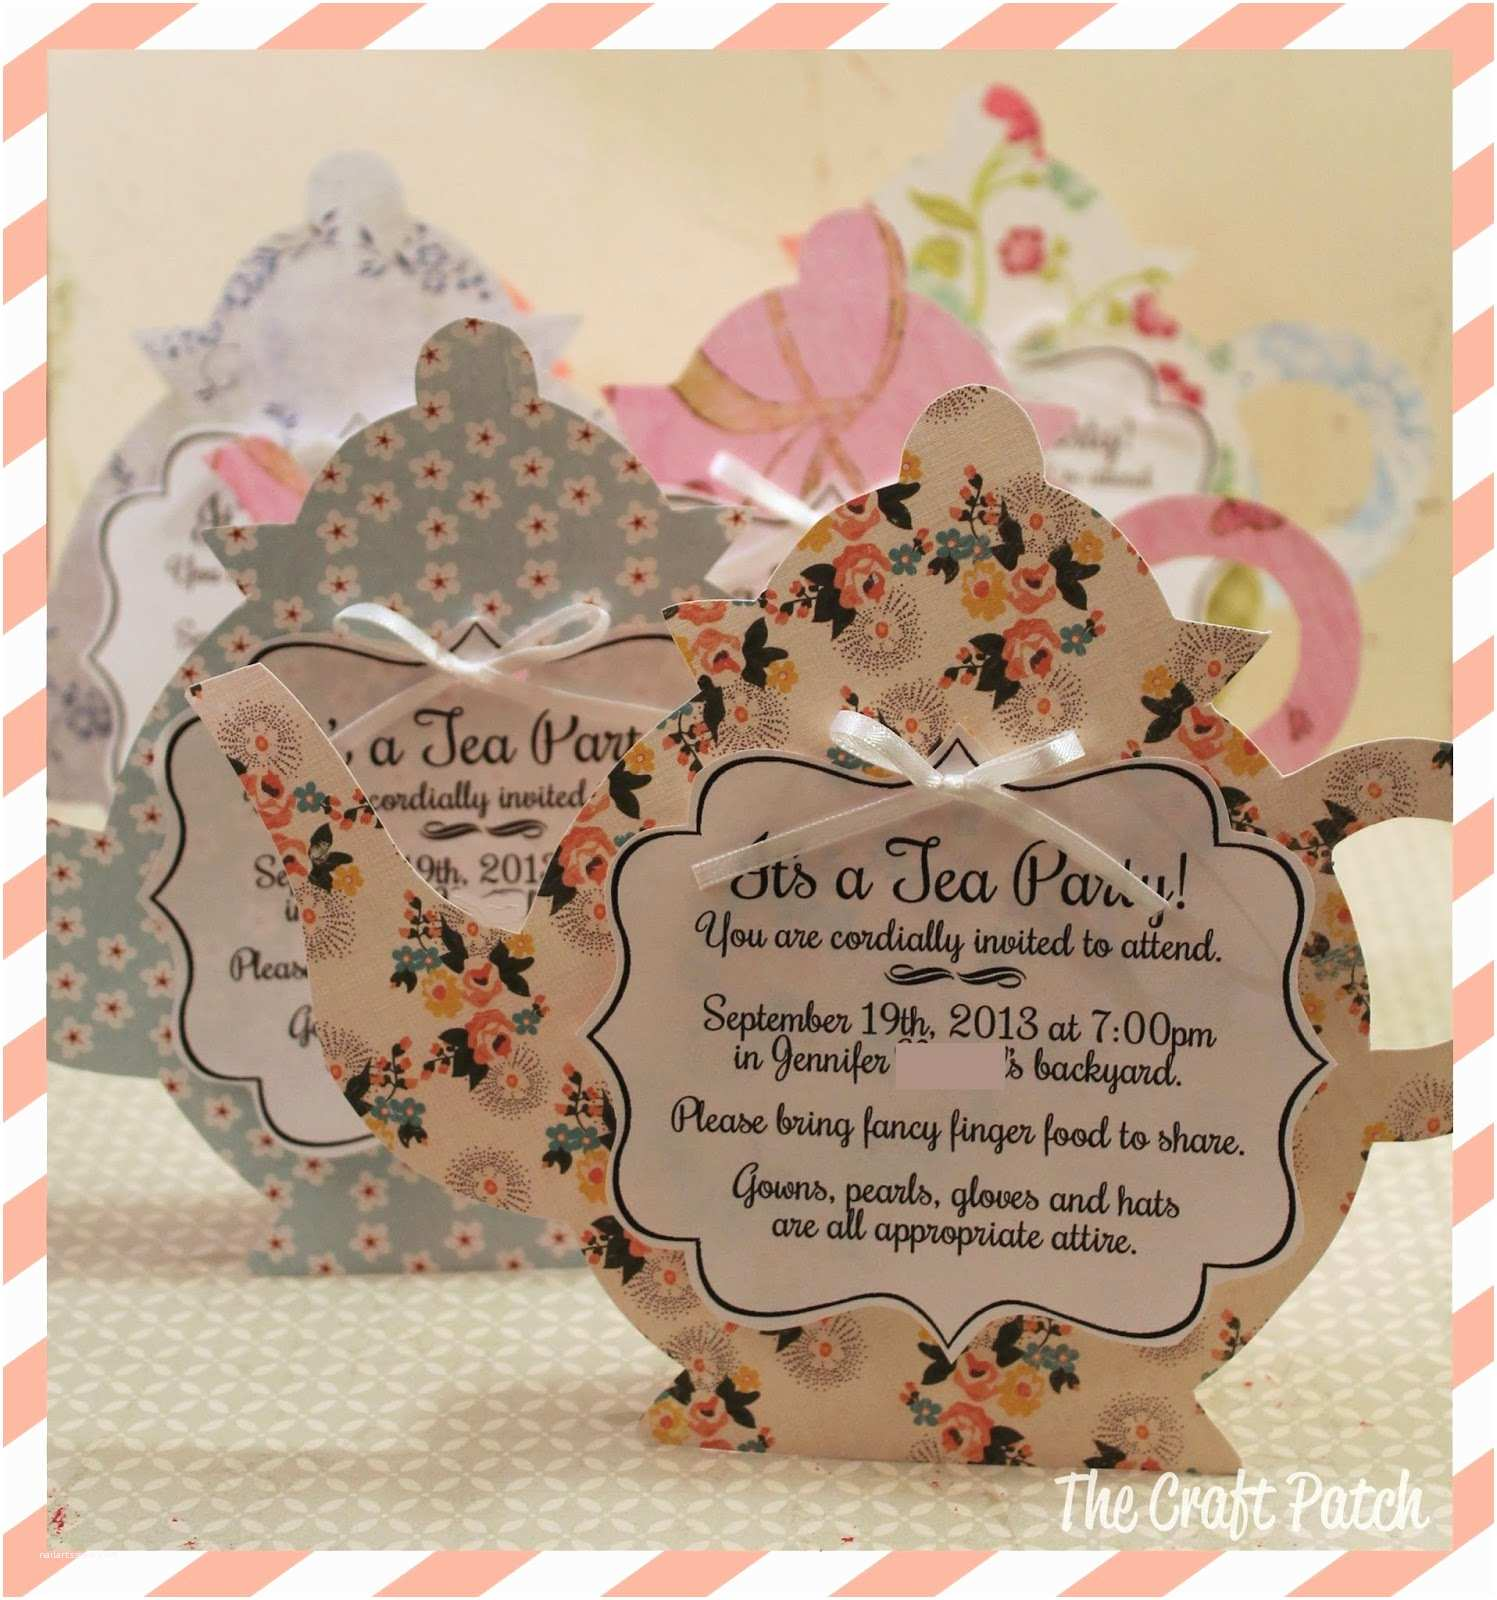 Tea Party Invitations the Craft Patch A Tea Party